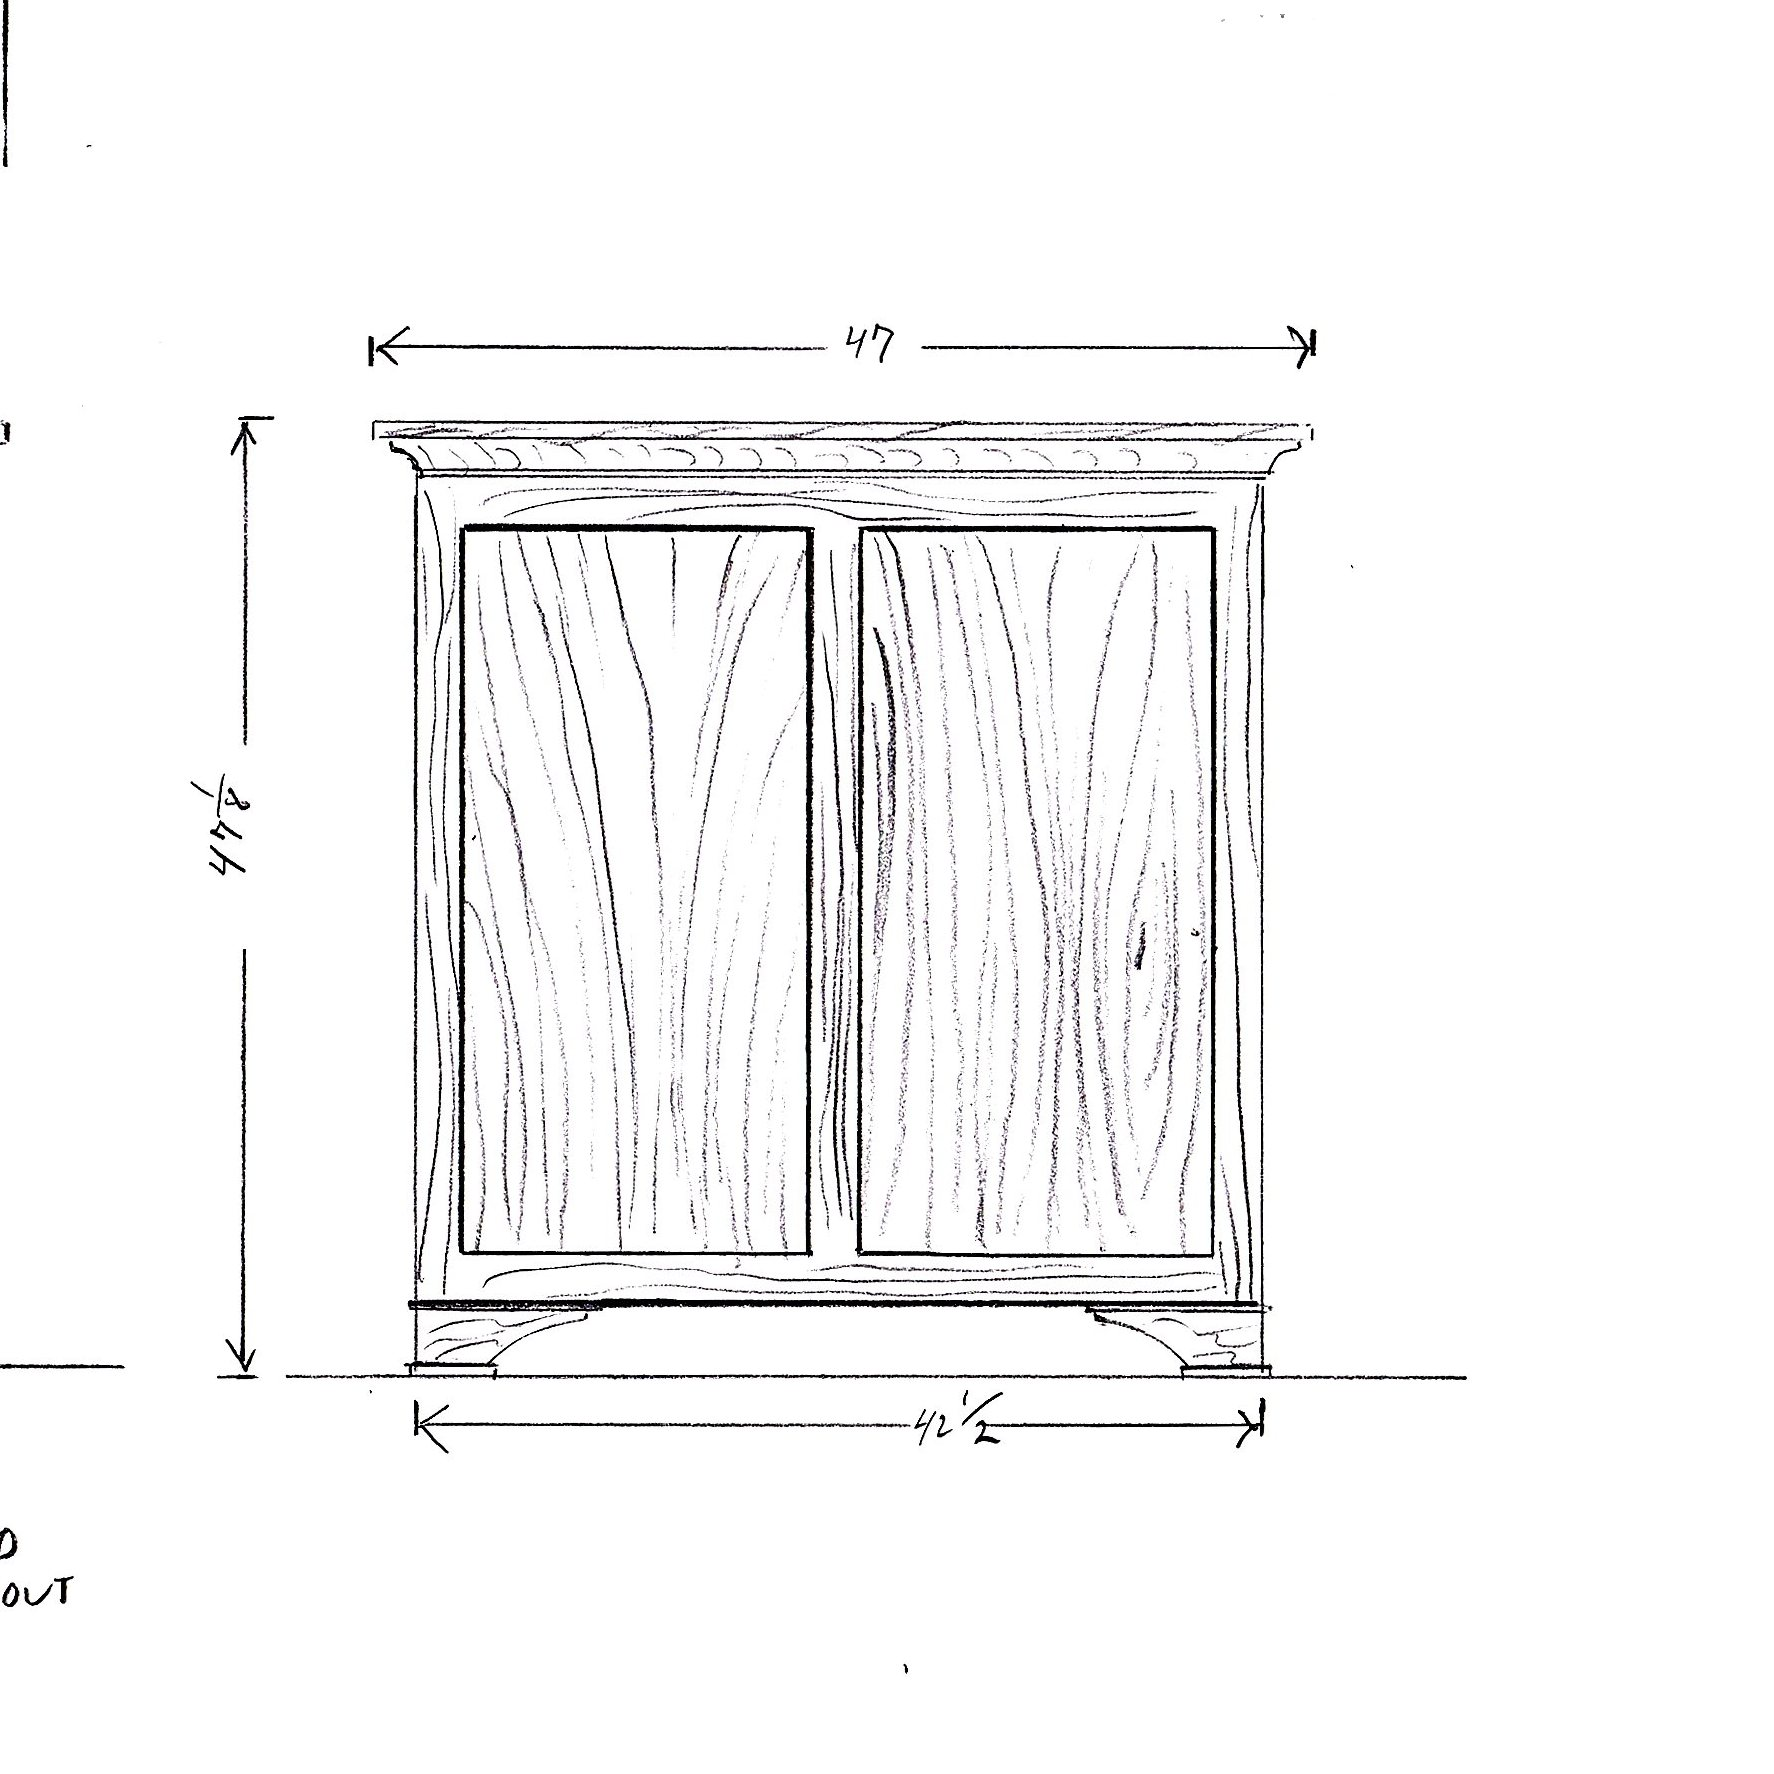 becton pg 4 bookcase side and plan.jpg